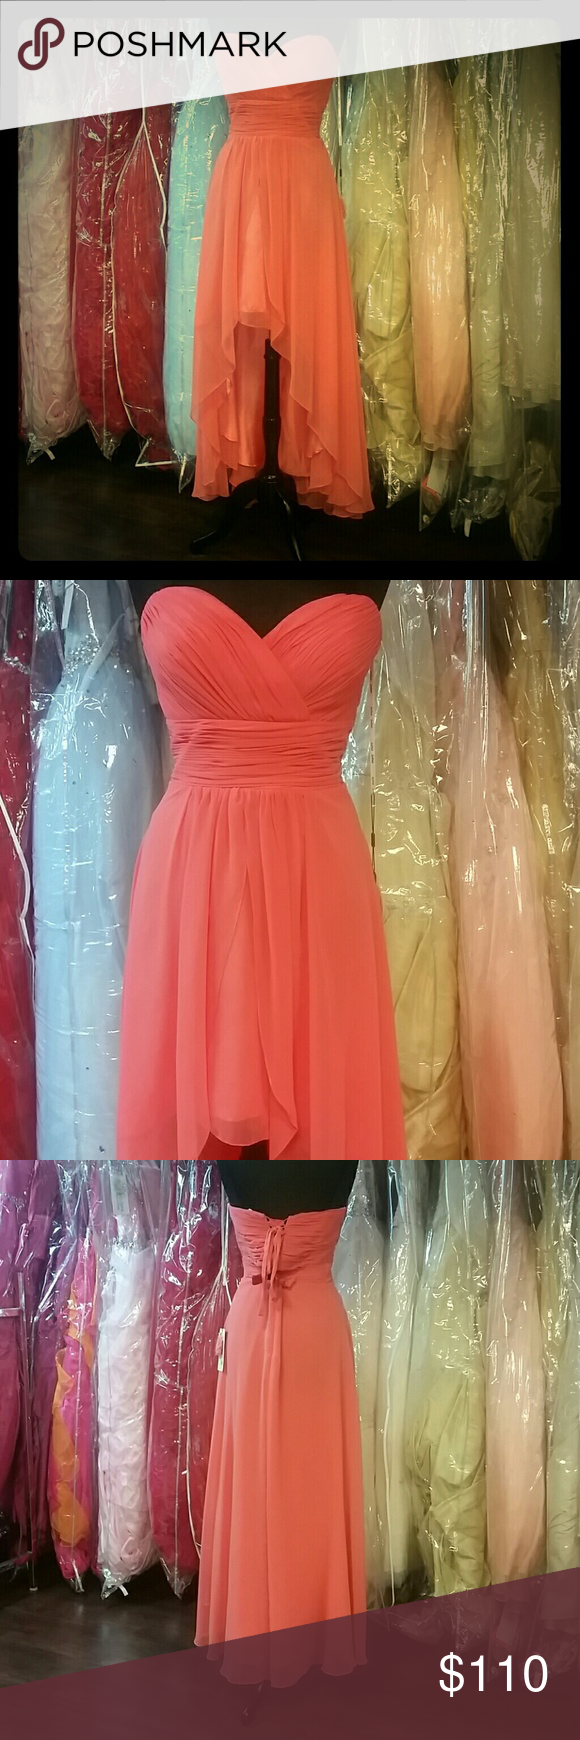 Coral chiffon highlow dress boutique dress skirt high low and